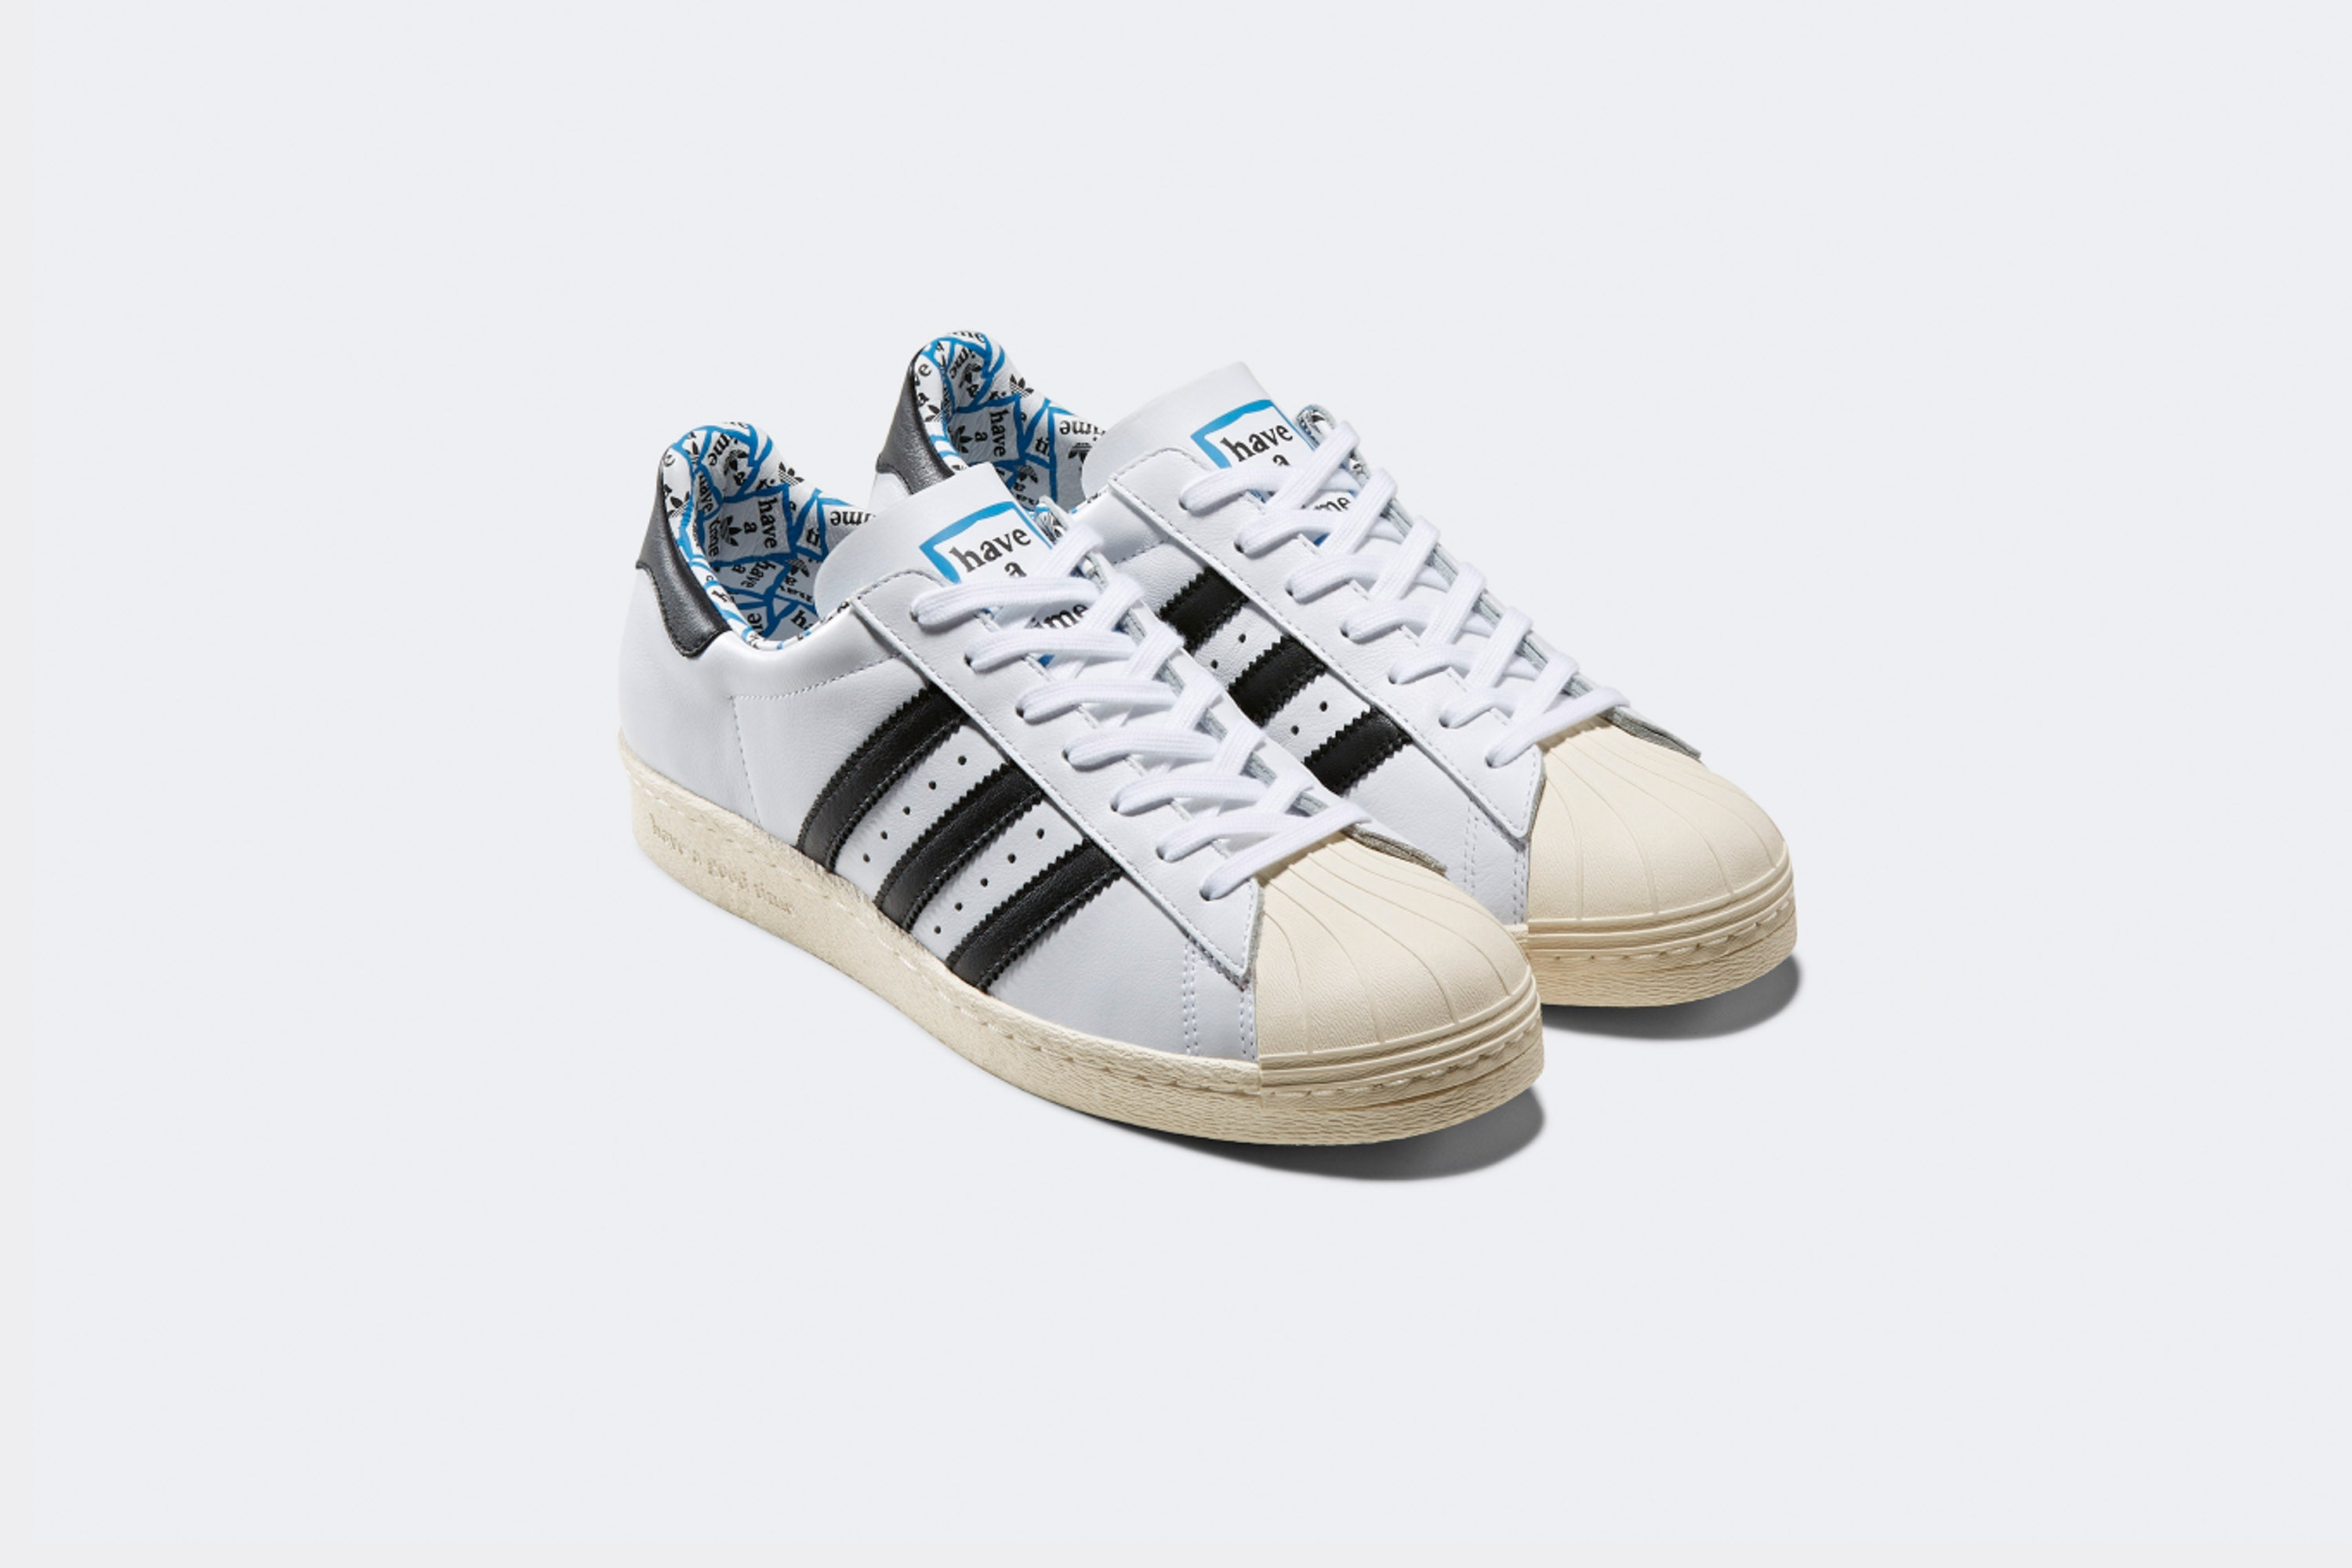 huge selection of 6919b b2e13 Have a Good Time x Adidas SUPERSTAR 80'S